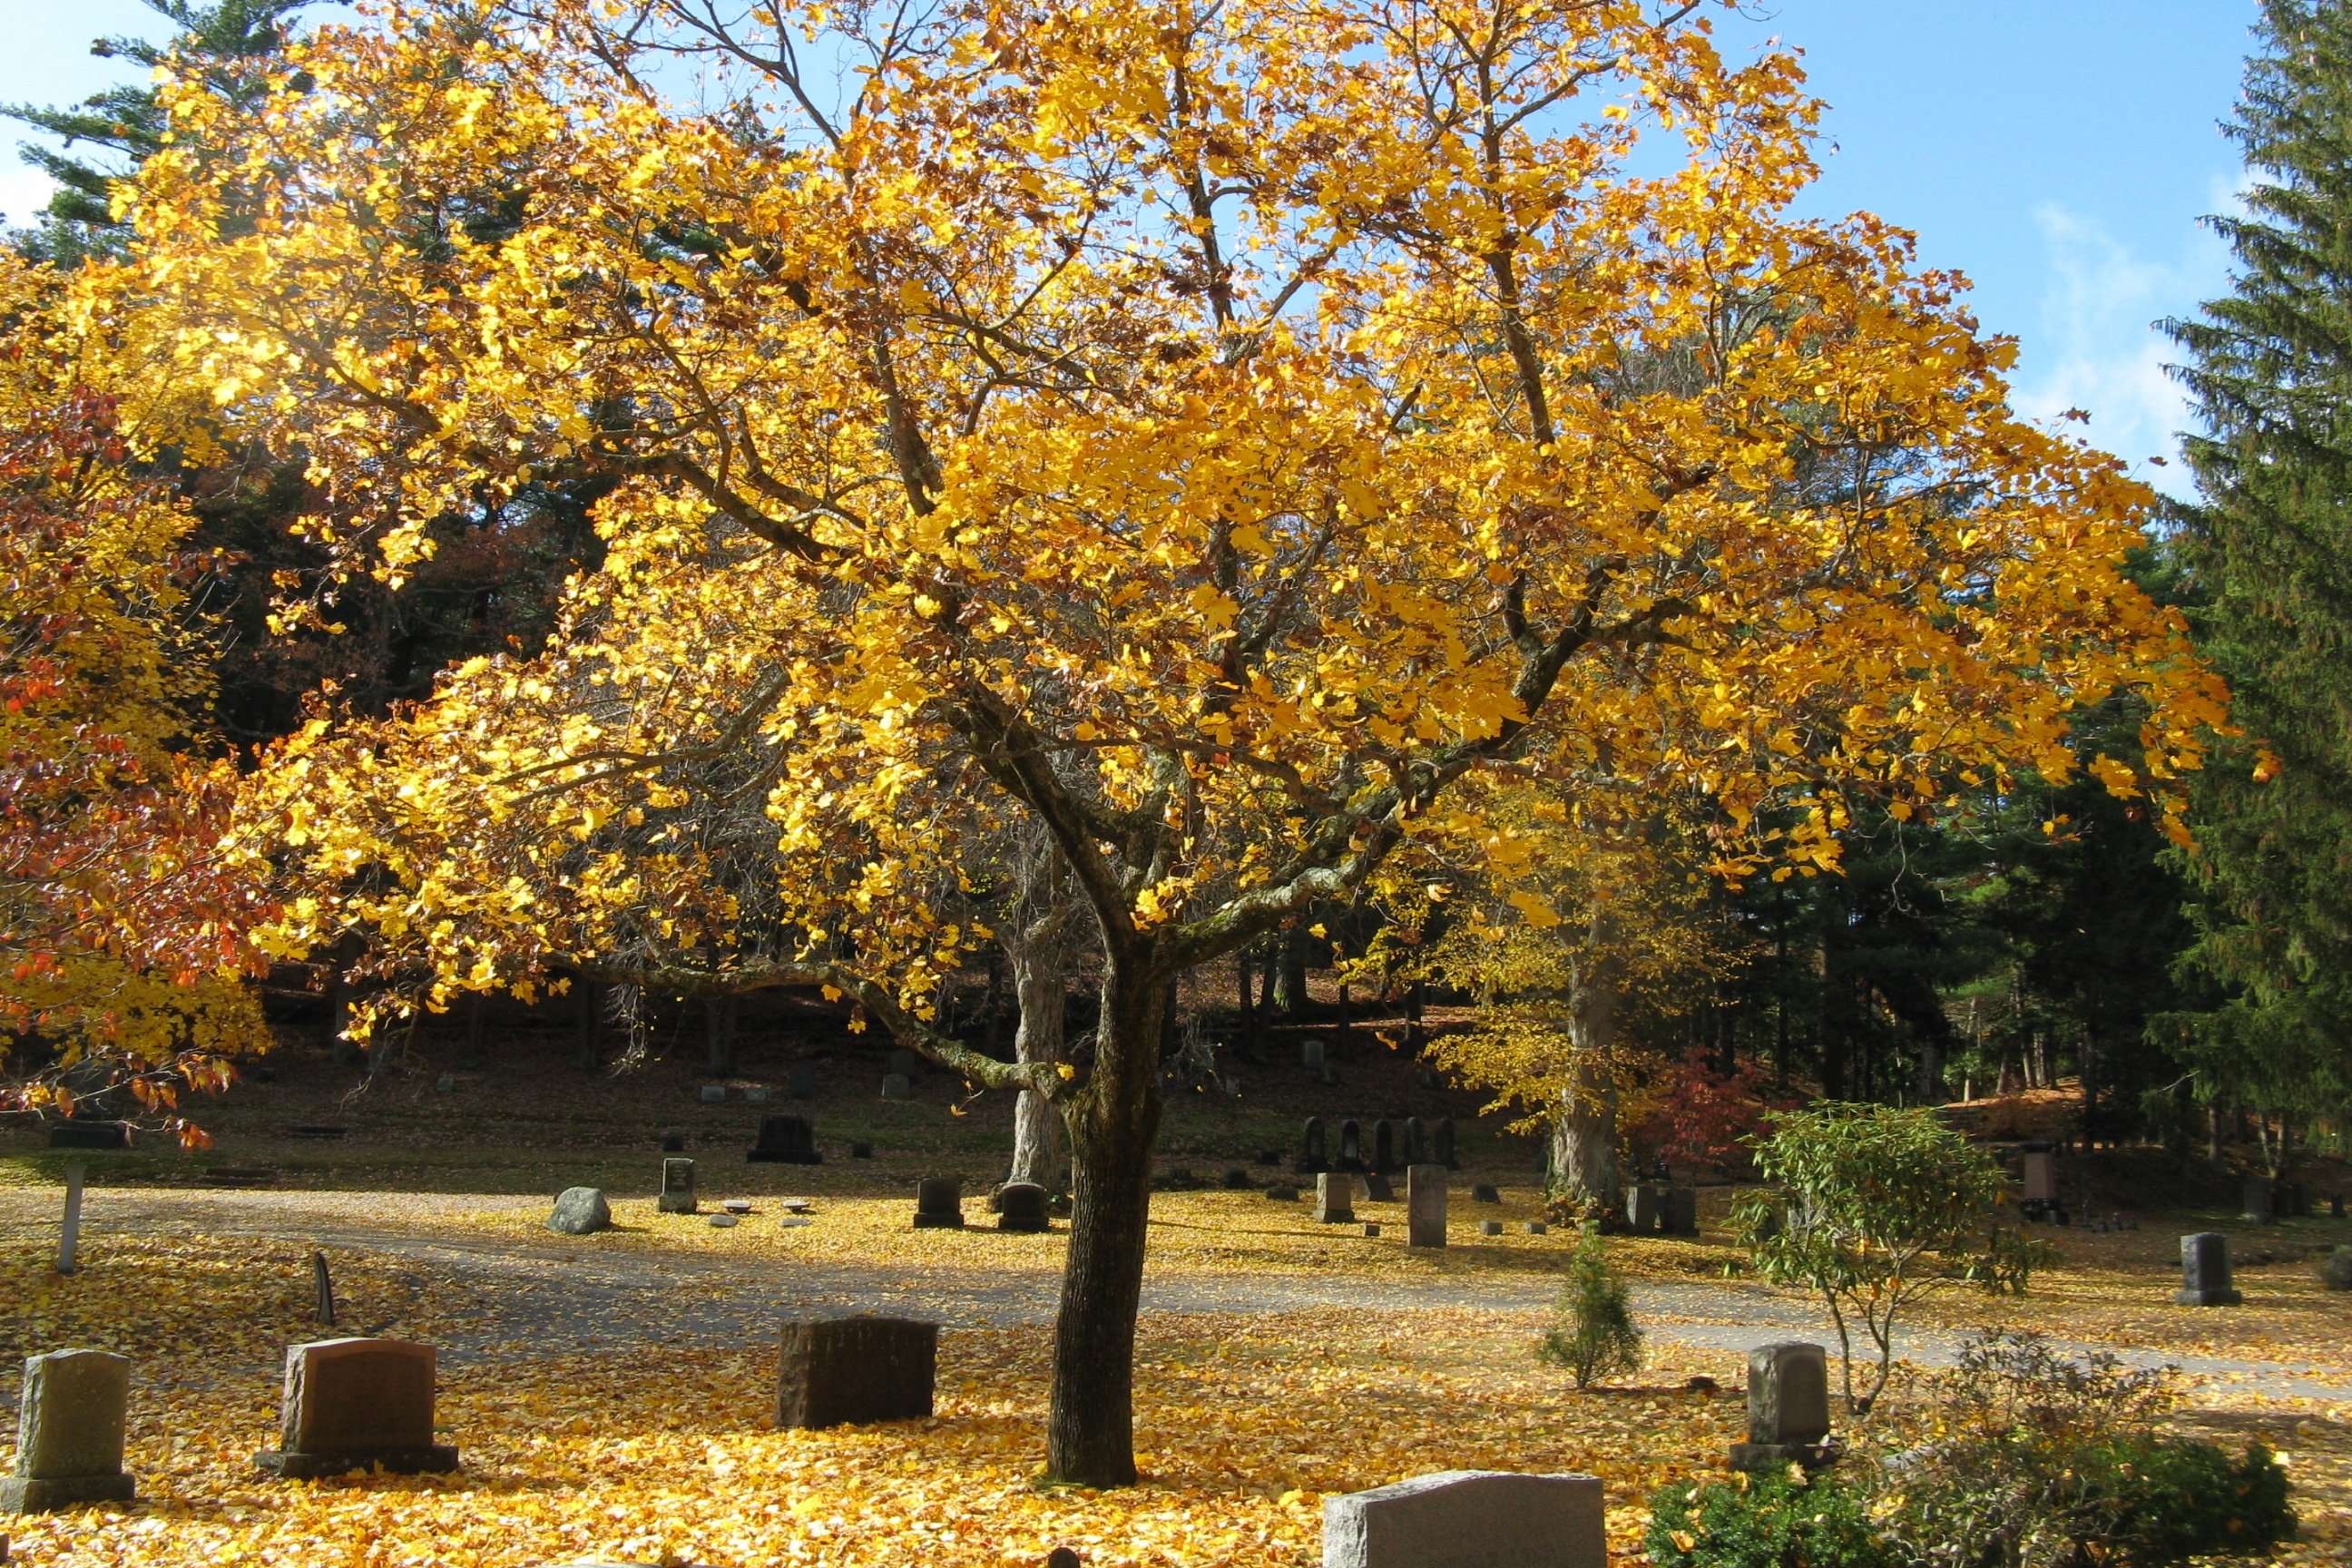 Sleepy_Hollow_Cemetery,_Concord_MA